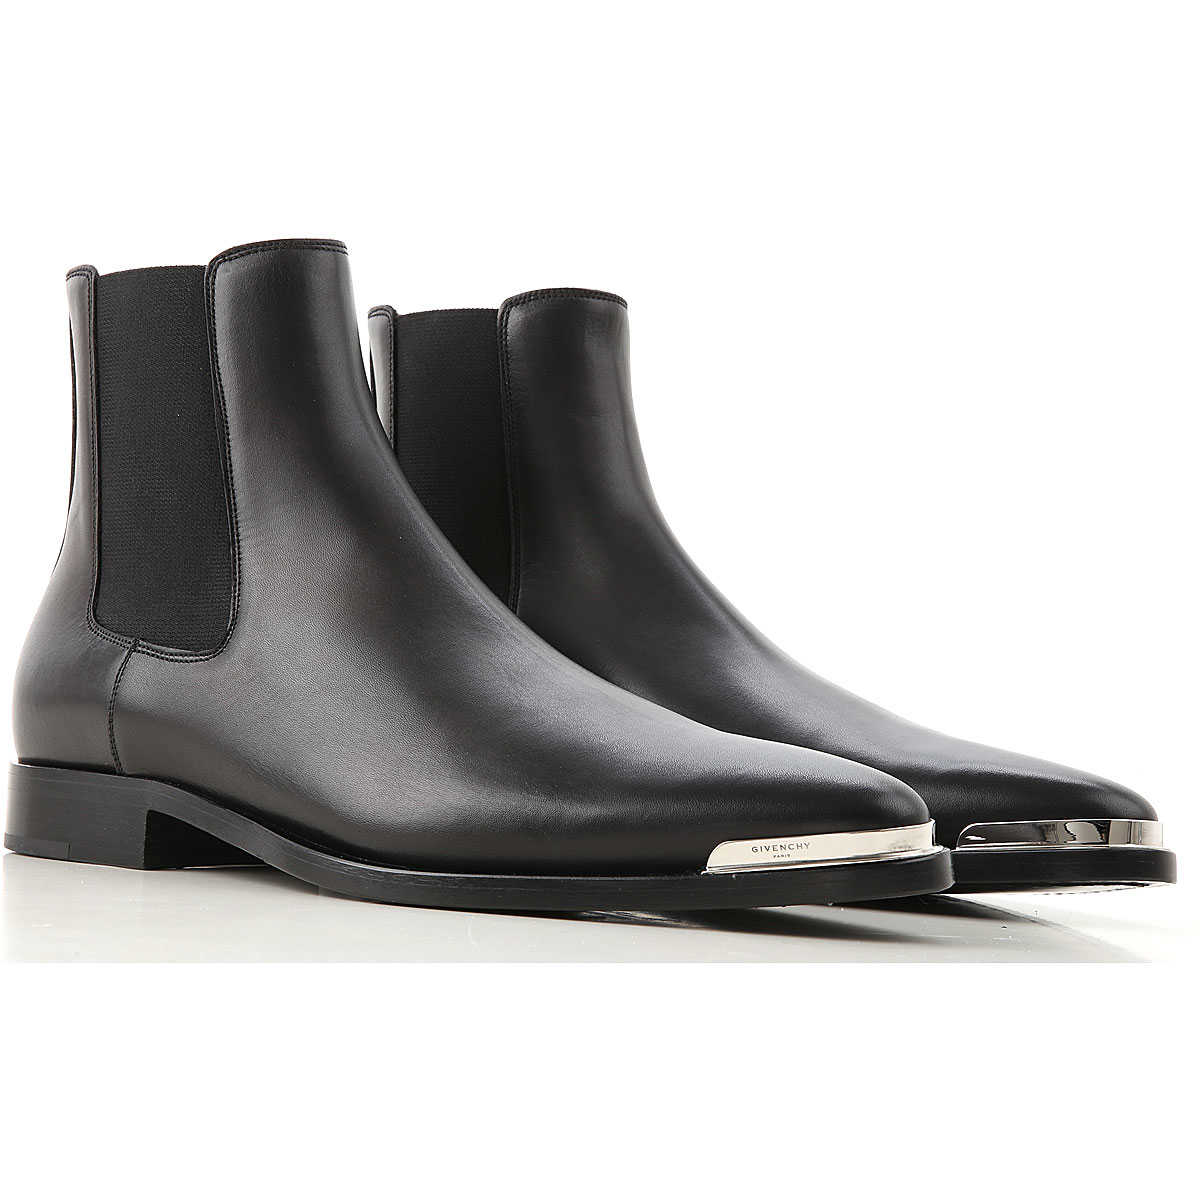 Givenchy Boots for Men Booties USA - GOOFASH